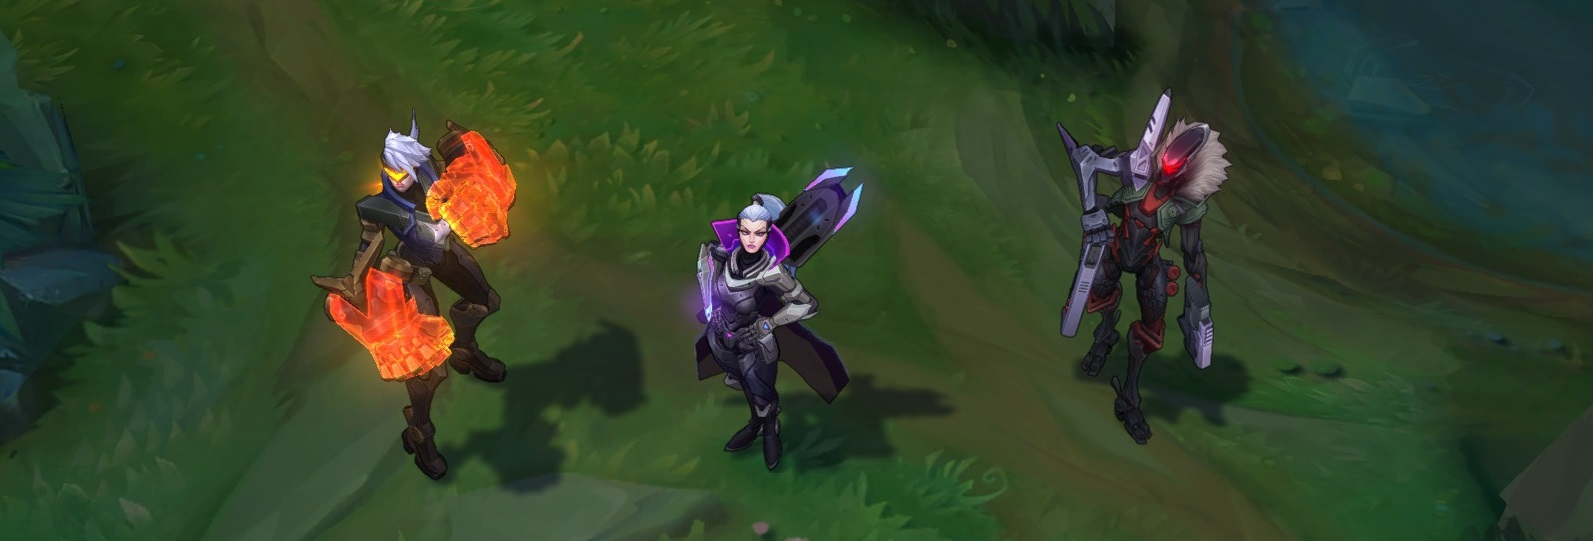 Three new PROJECT skins are now available - 1350 RP skins for Jhin \u0026 Vi and 1820 legendary skin for Vayne!